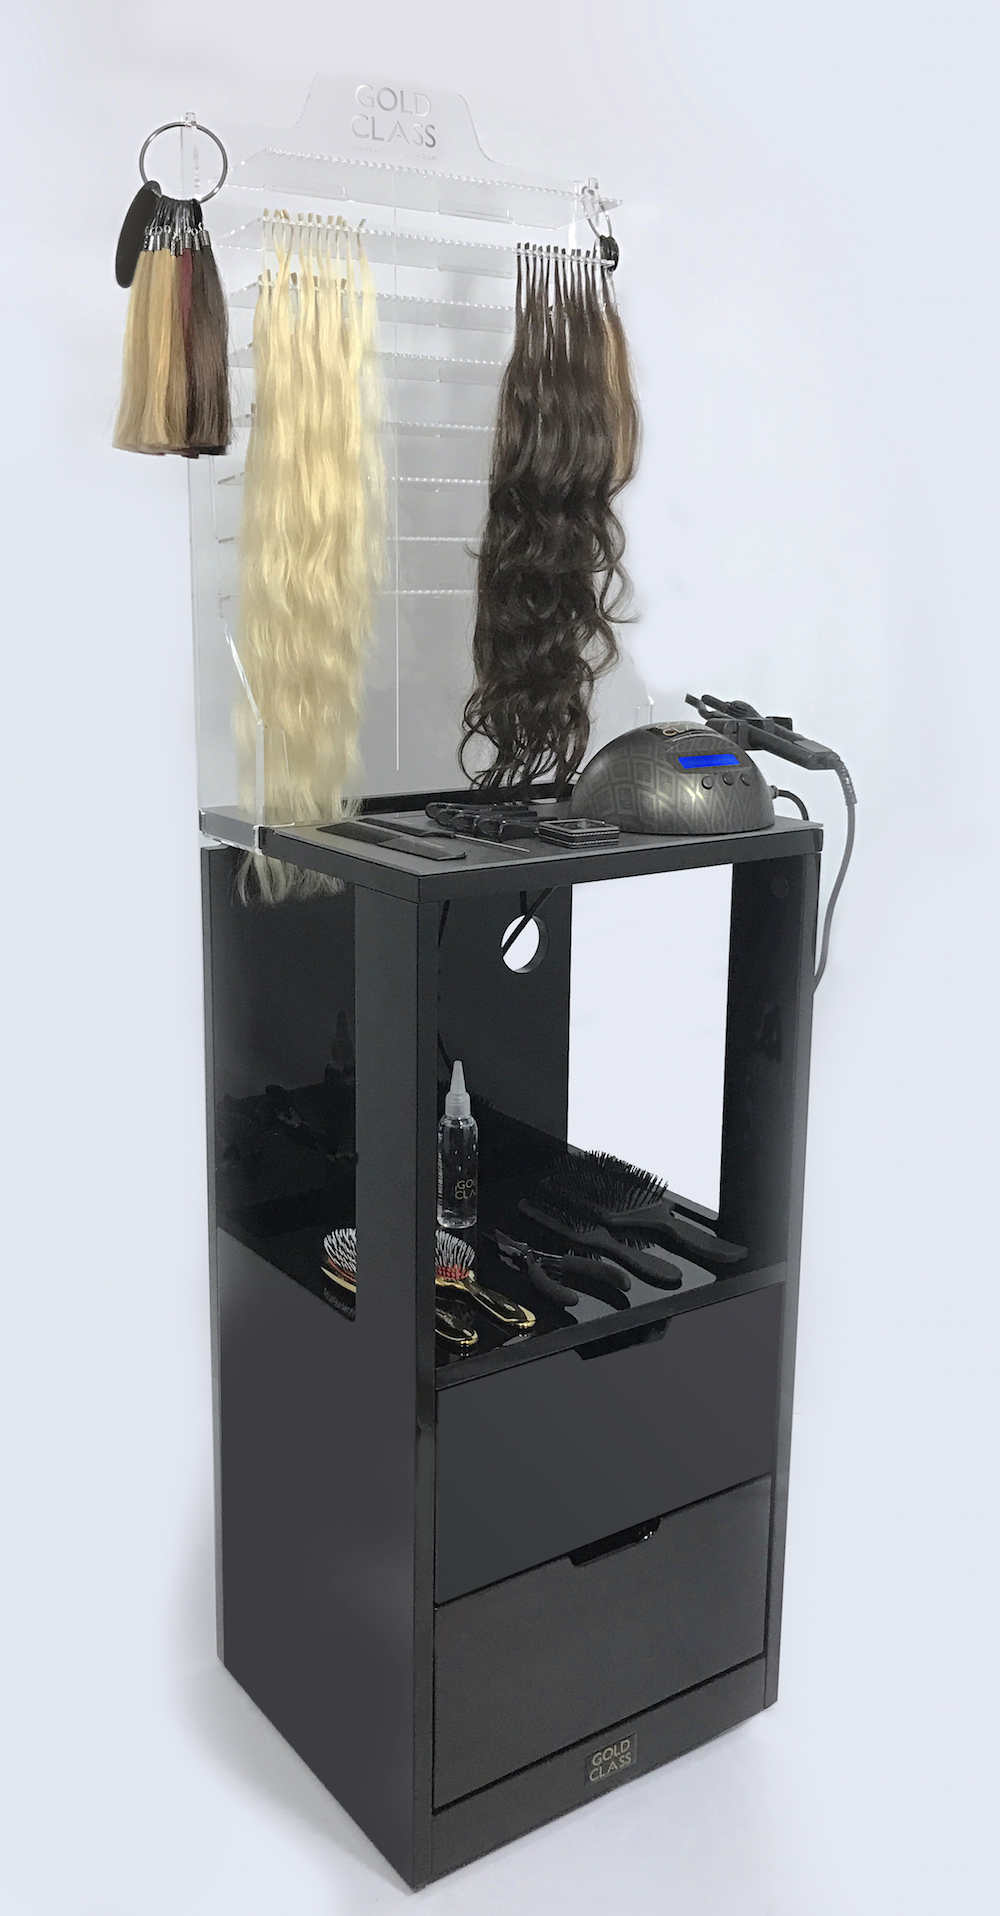 New In The Gold Class Hair Extension Workstation On Wheels Gold